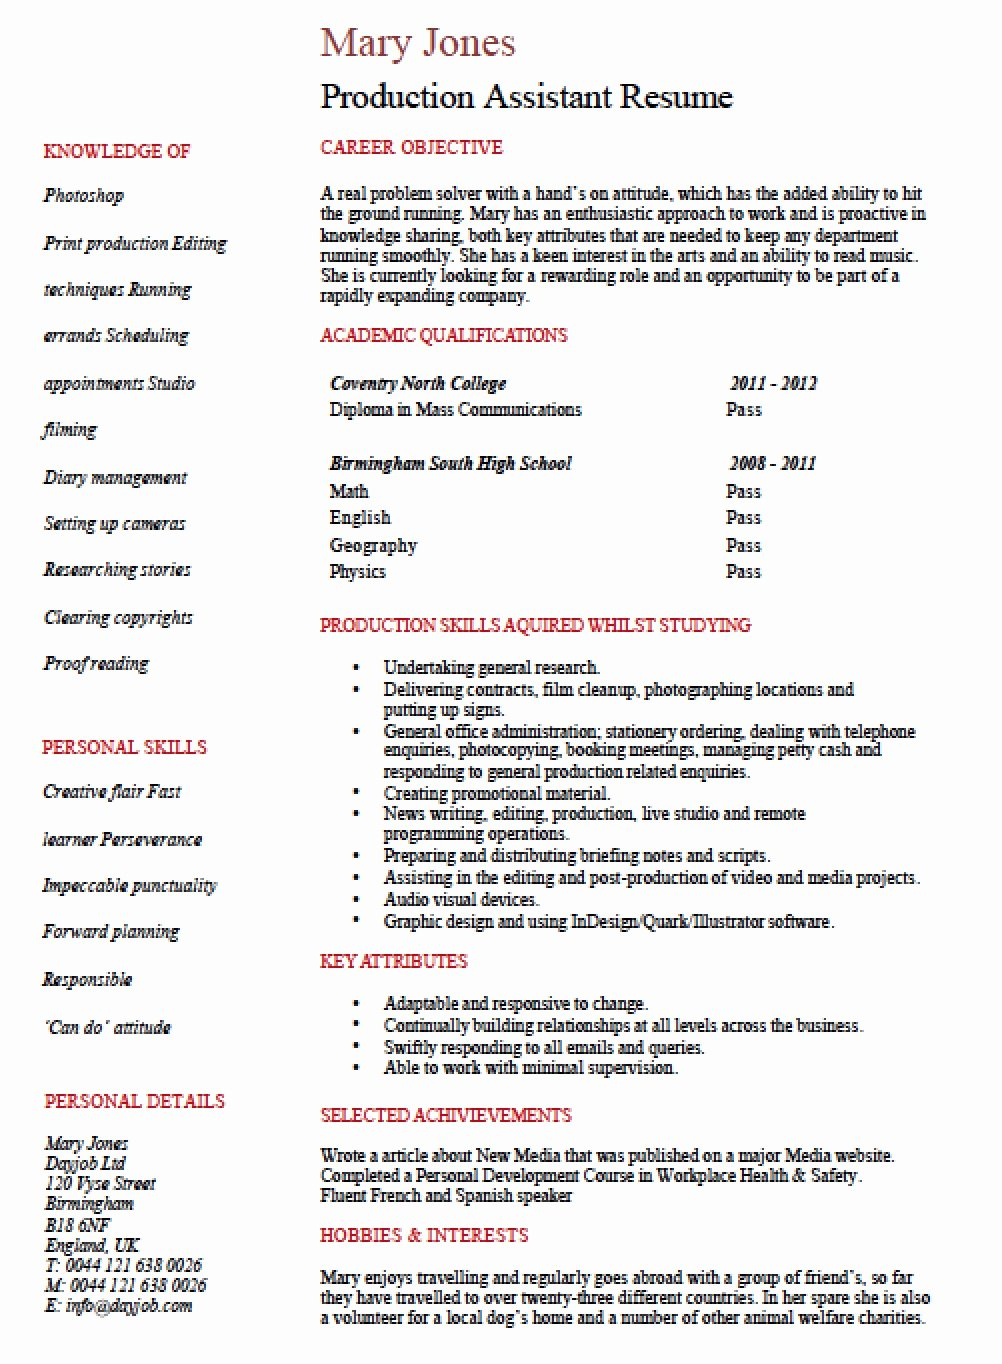 Production assistant Resume Examples Awesome Free Entry Level Production assistant Resume Template